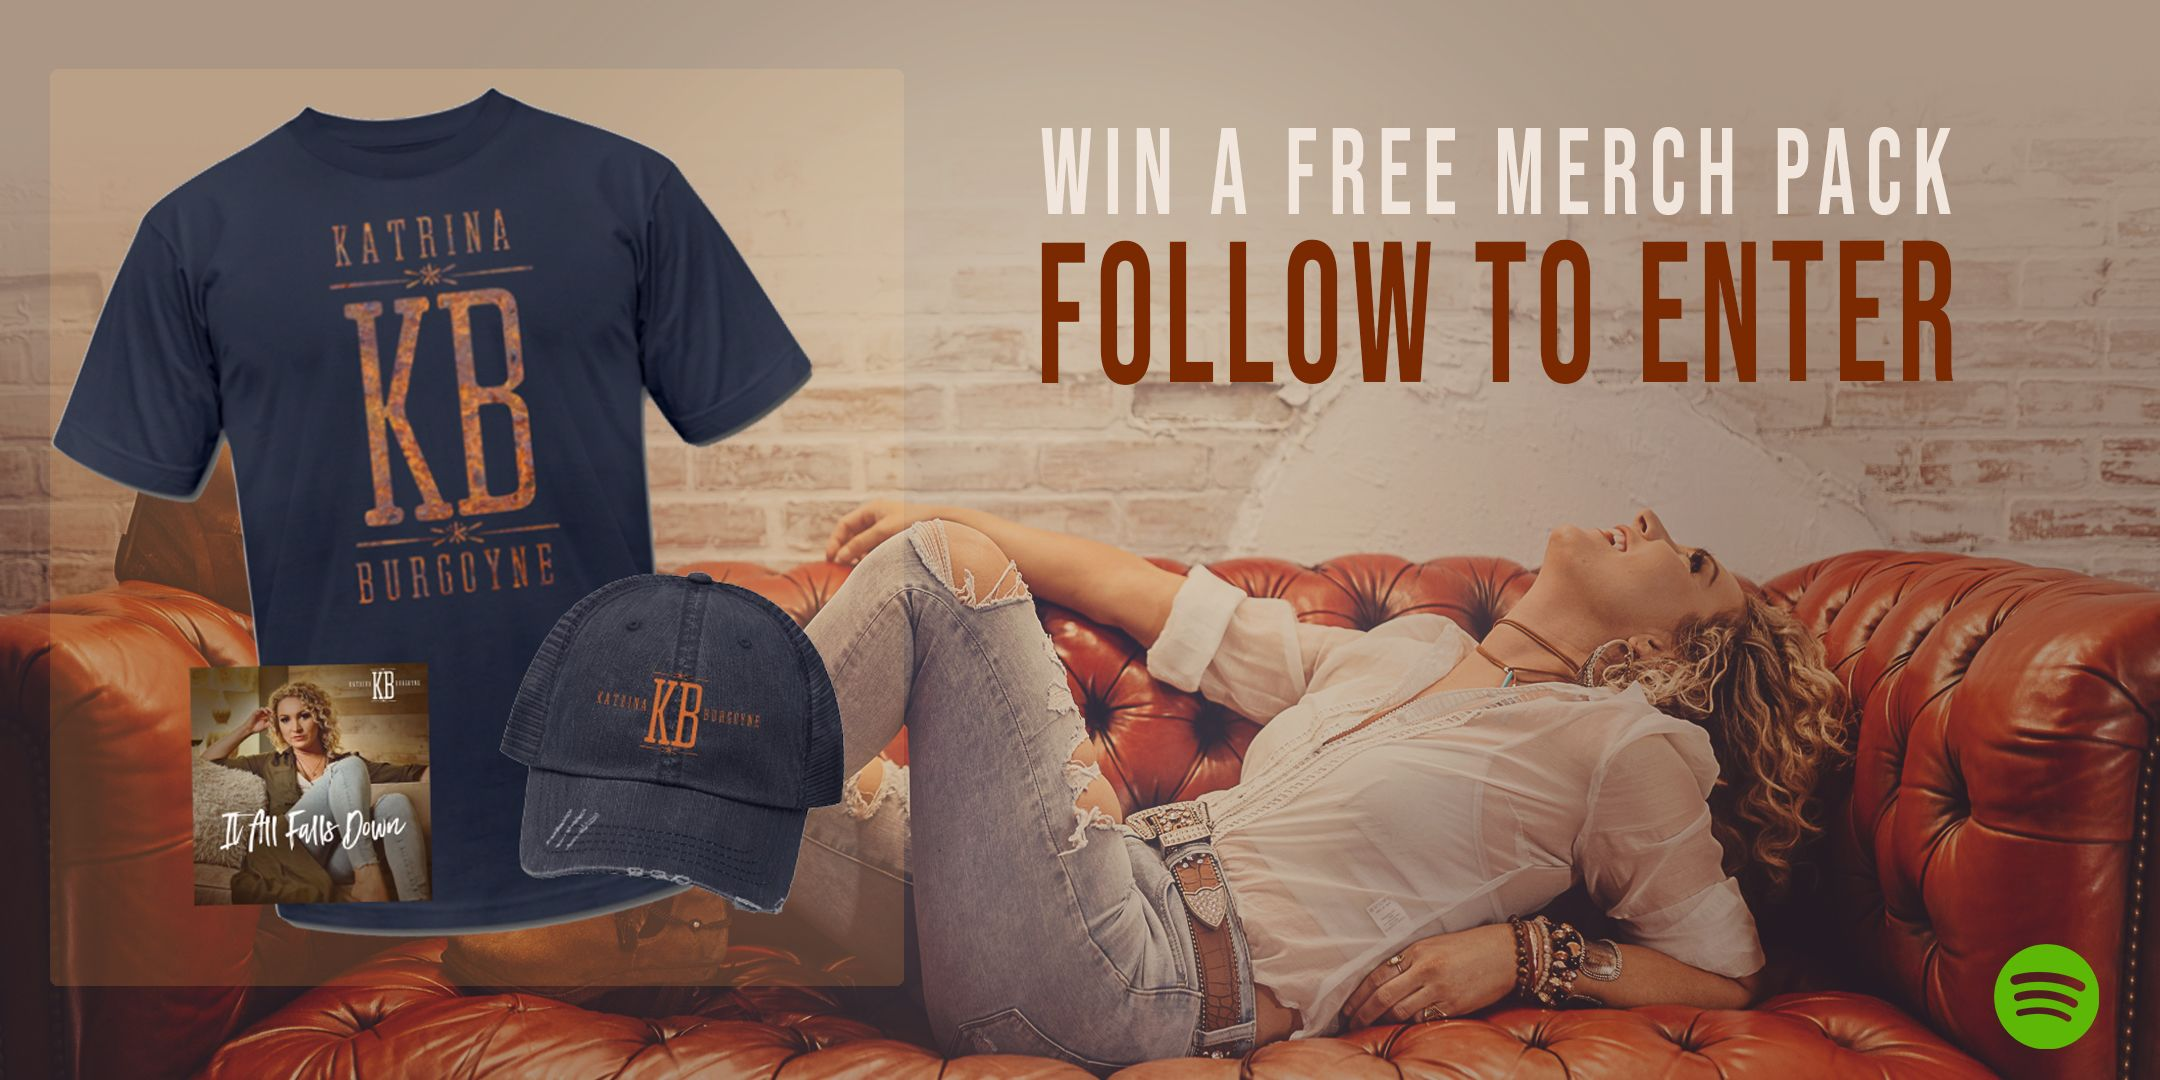 Image for contest: Follow for FREE MERCH